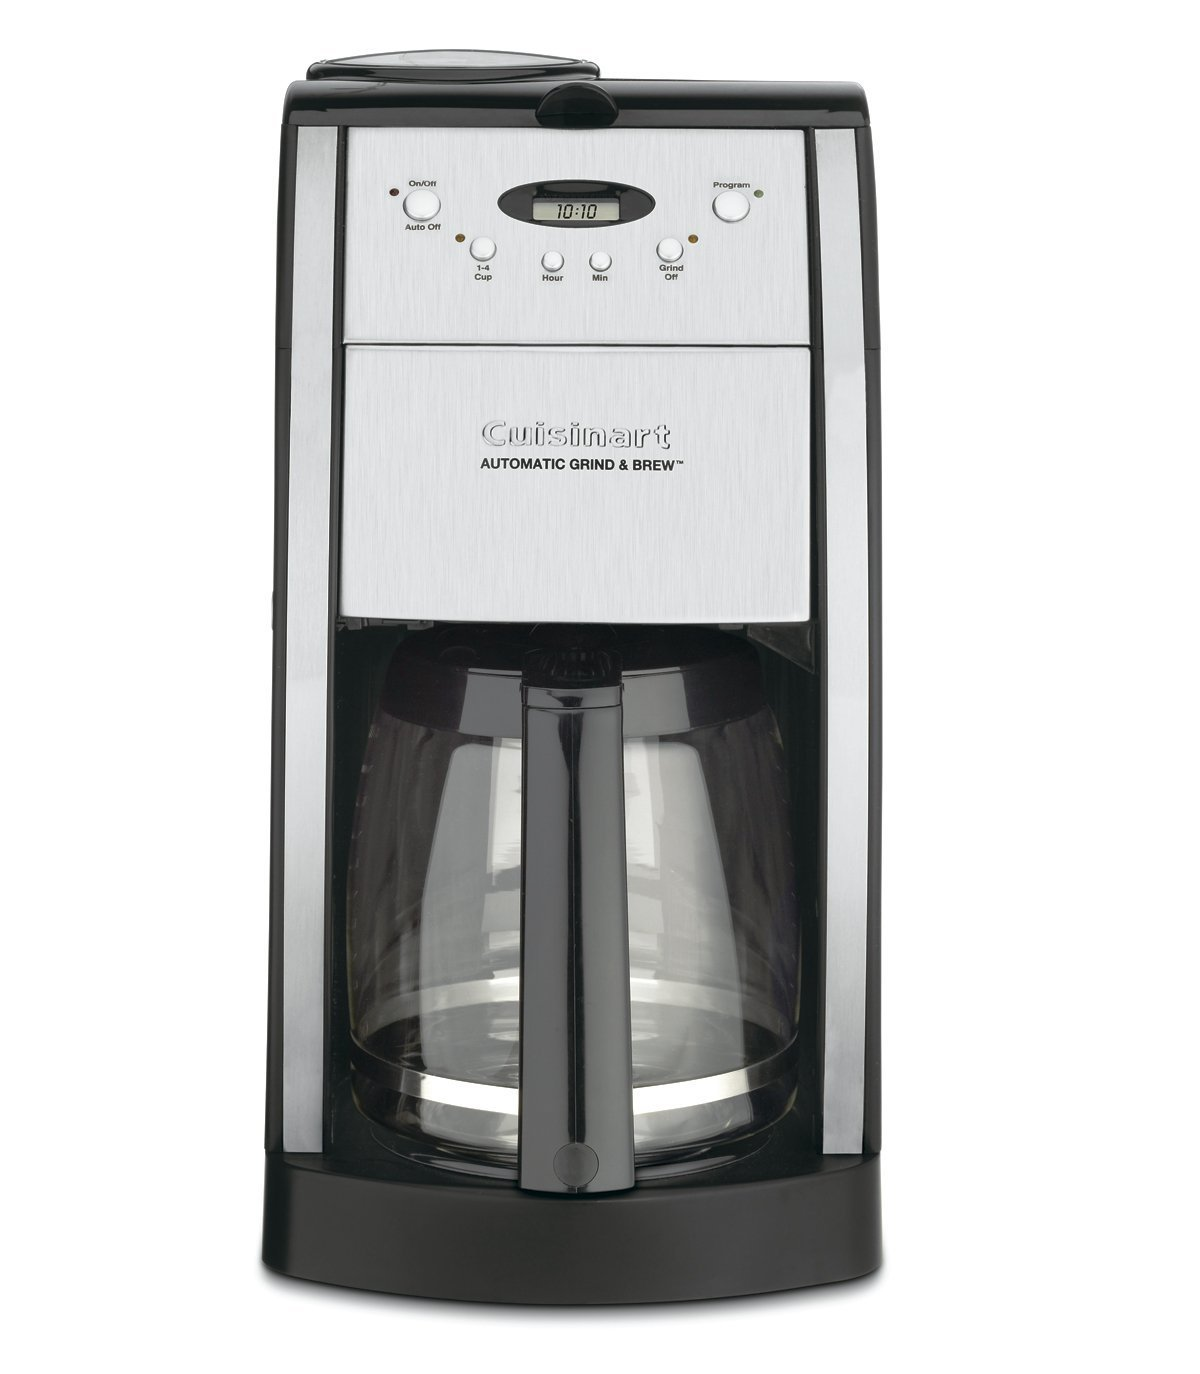 Cuisinart DGB-550BKFR 12 Cup Grind and Brew Automatic Coffee Maker (Certified Refurbished), Chrome by Cuisinart